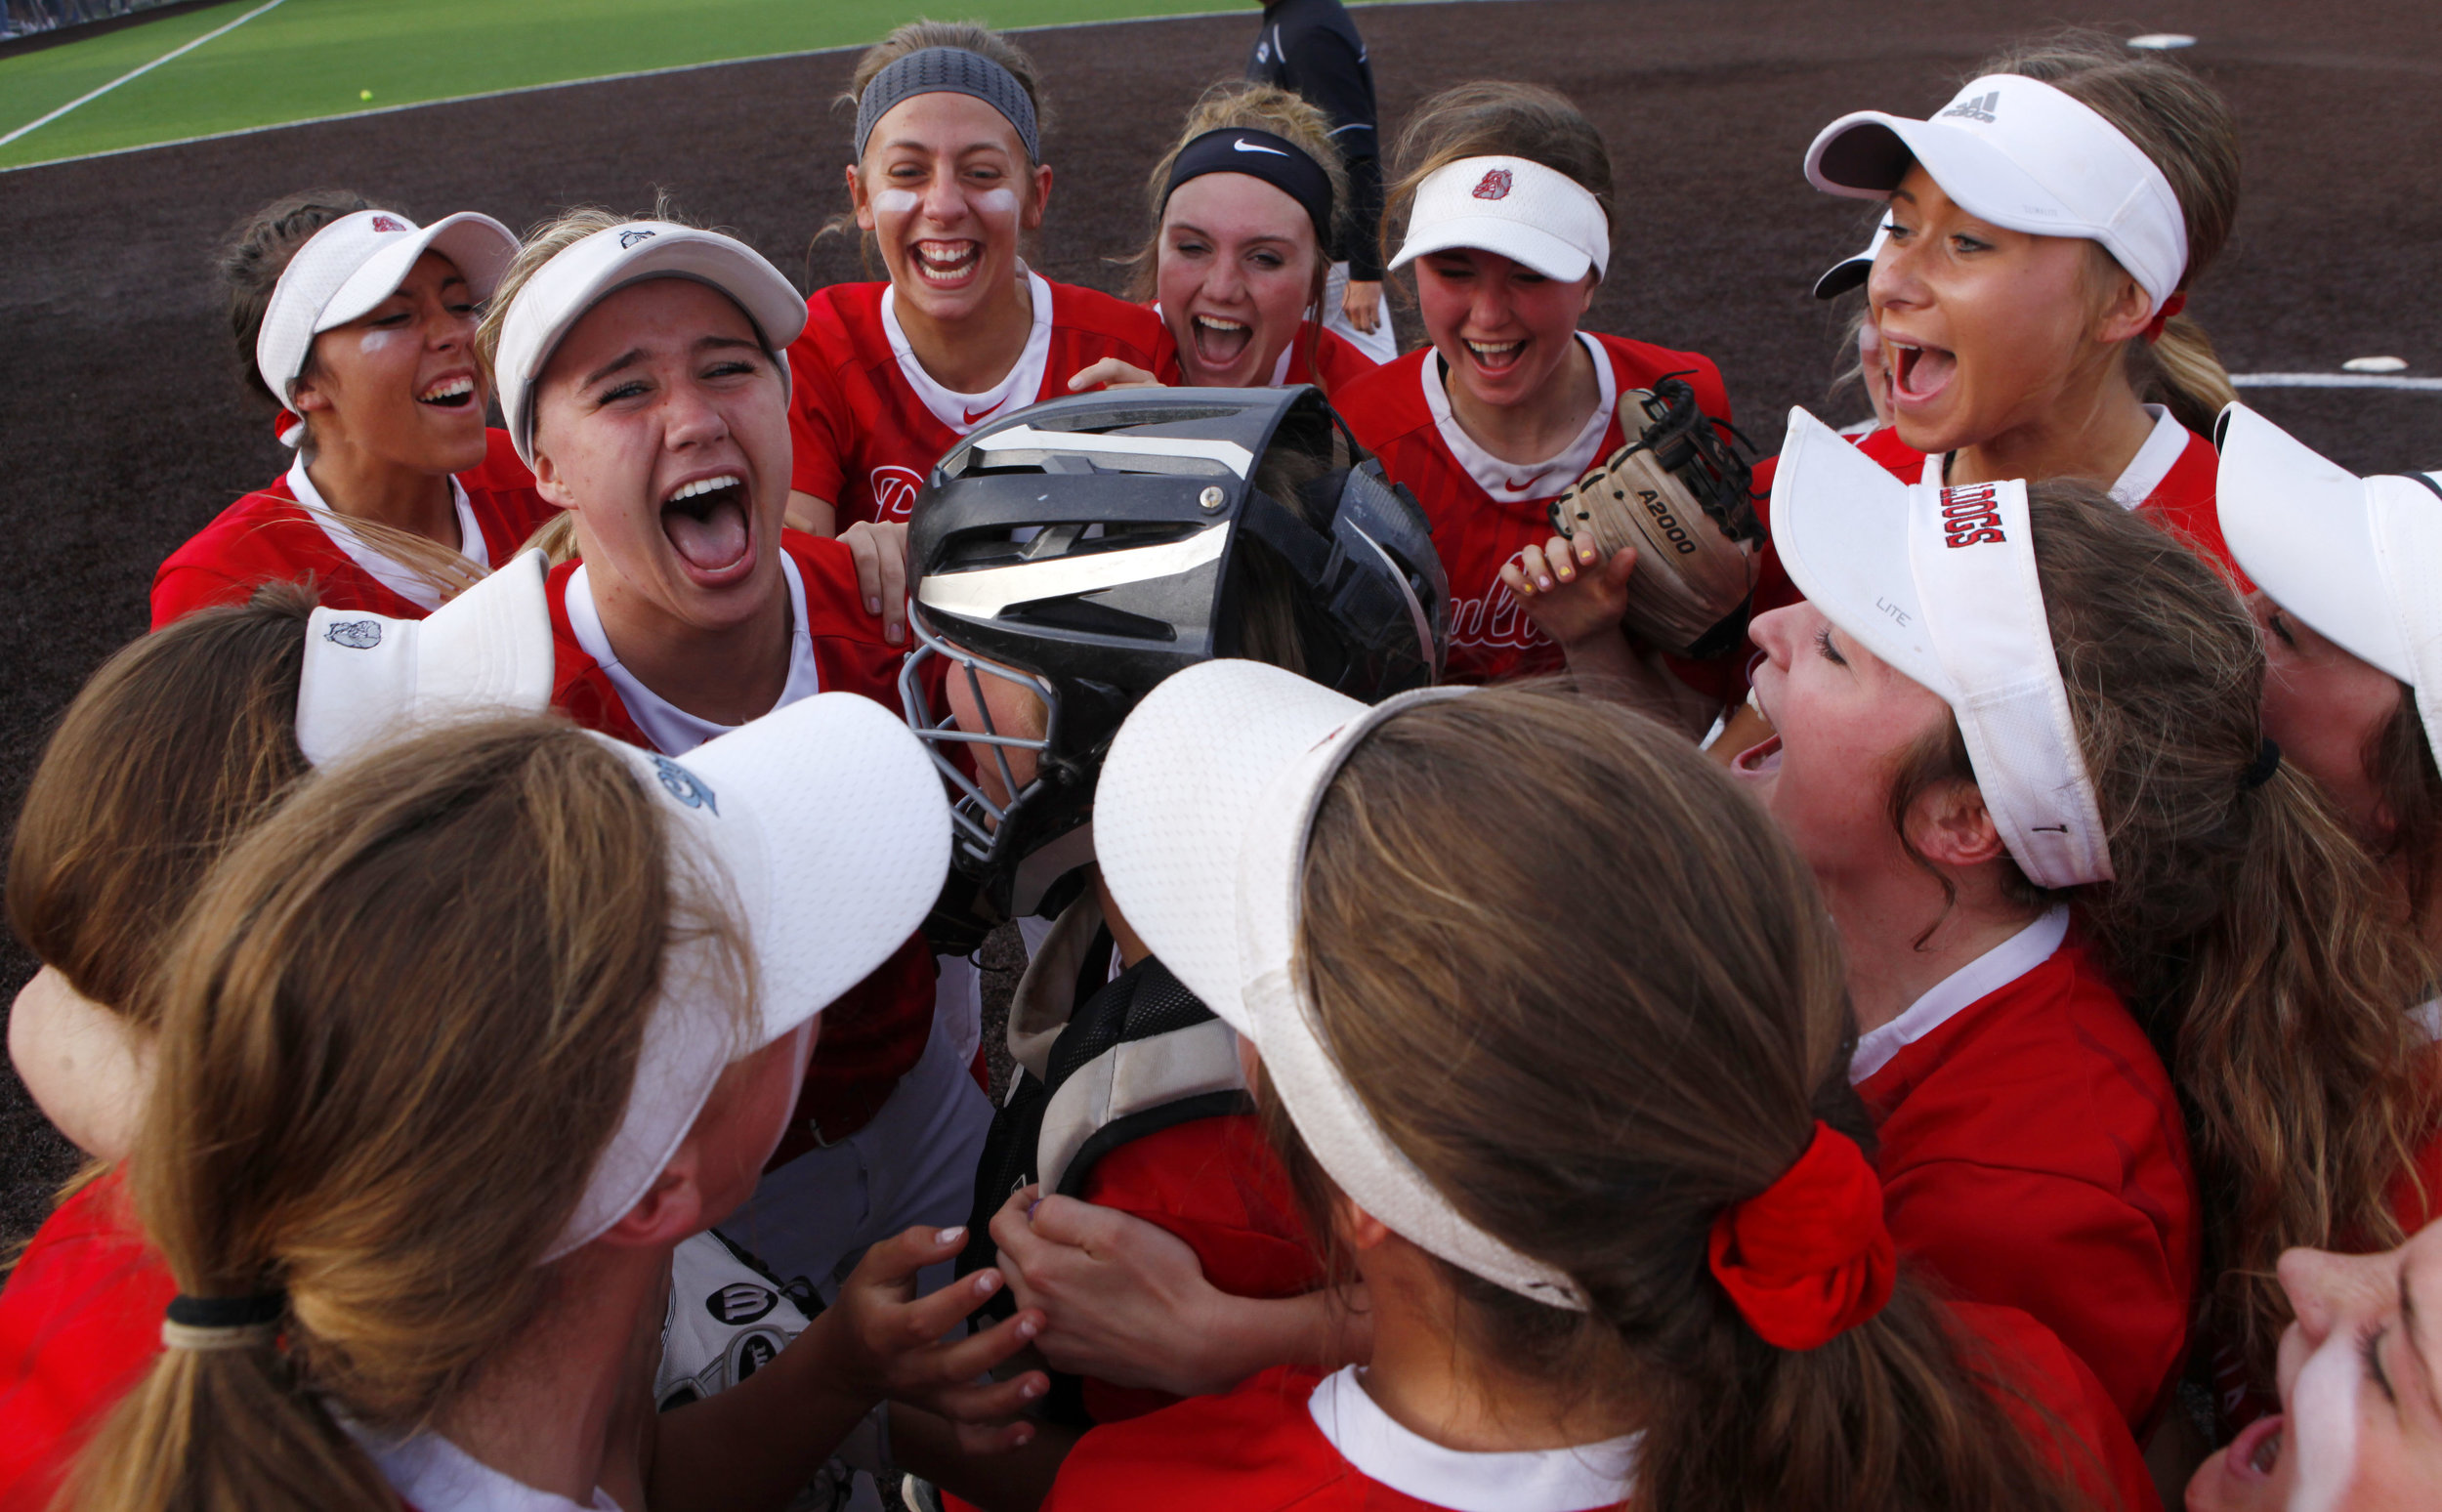 Crown Point players celebrate their 2-0 sectional championship win over Lake Central in St. John.